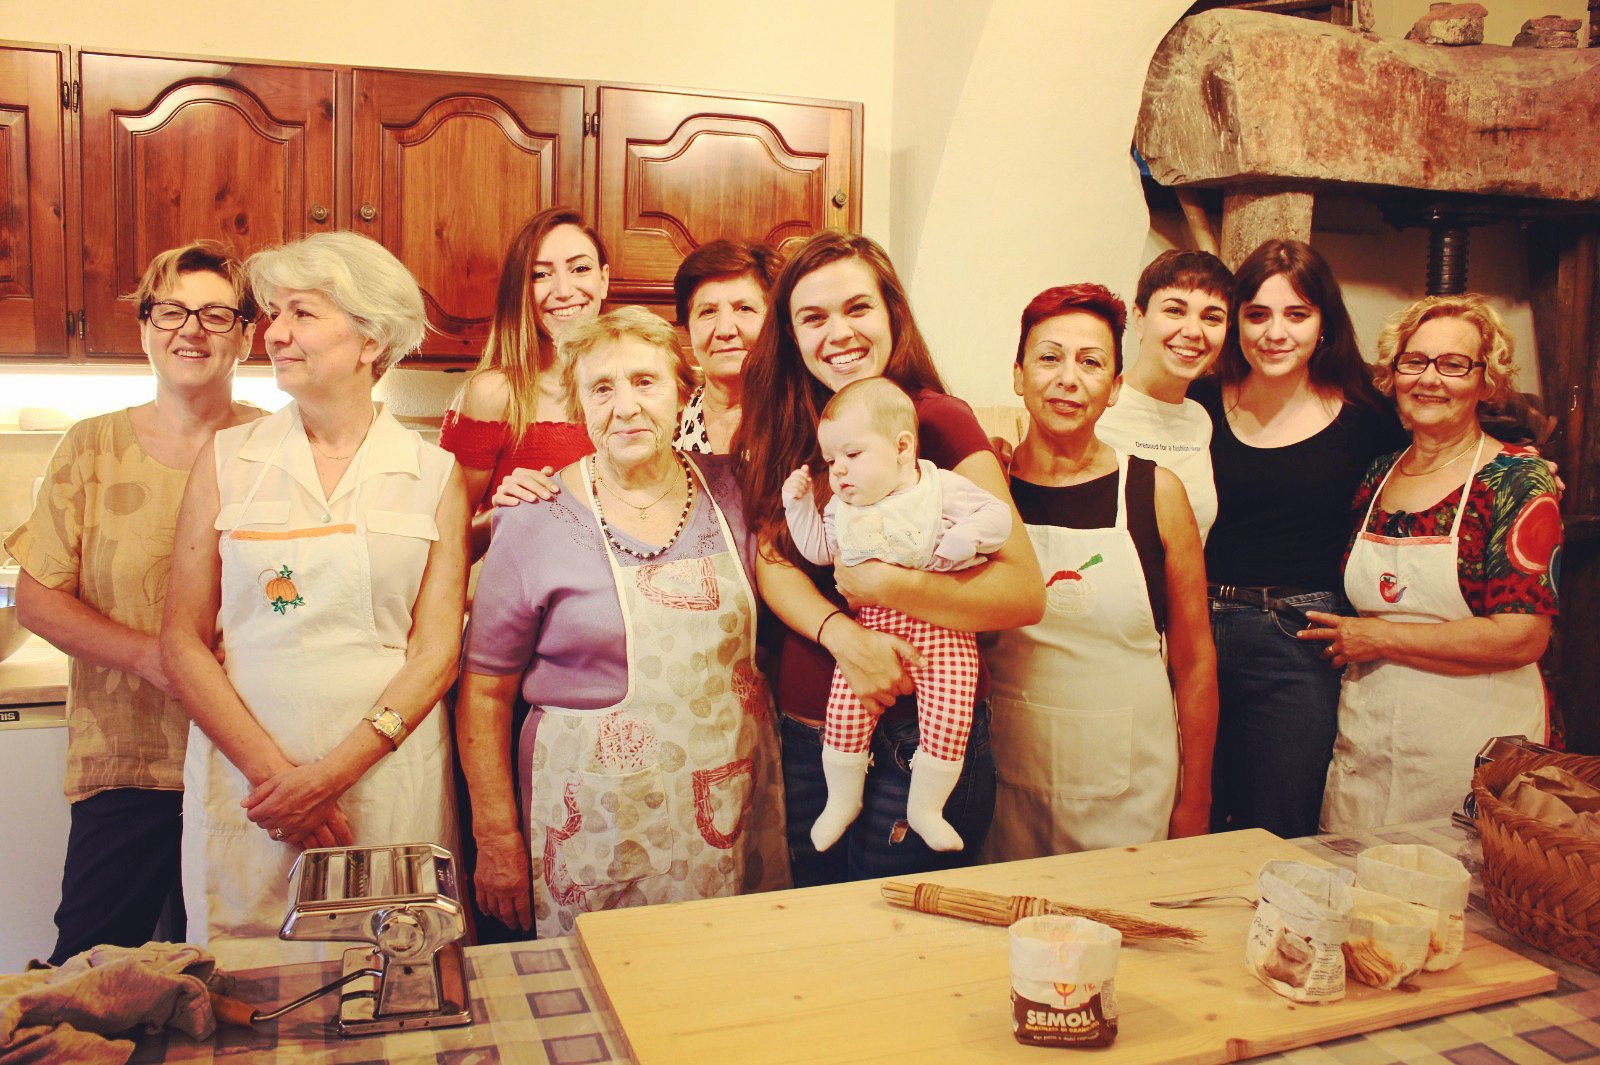 Ravioli with ricotta and spinach with Nonna Nerina and Family (Wednesday)